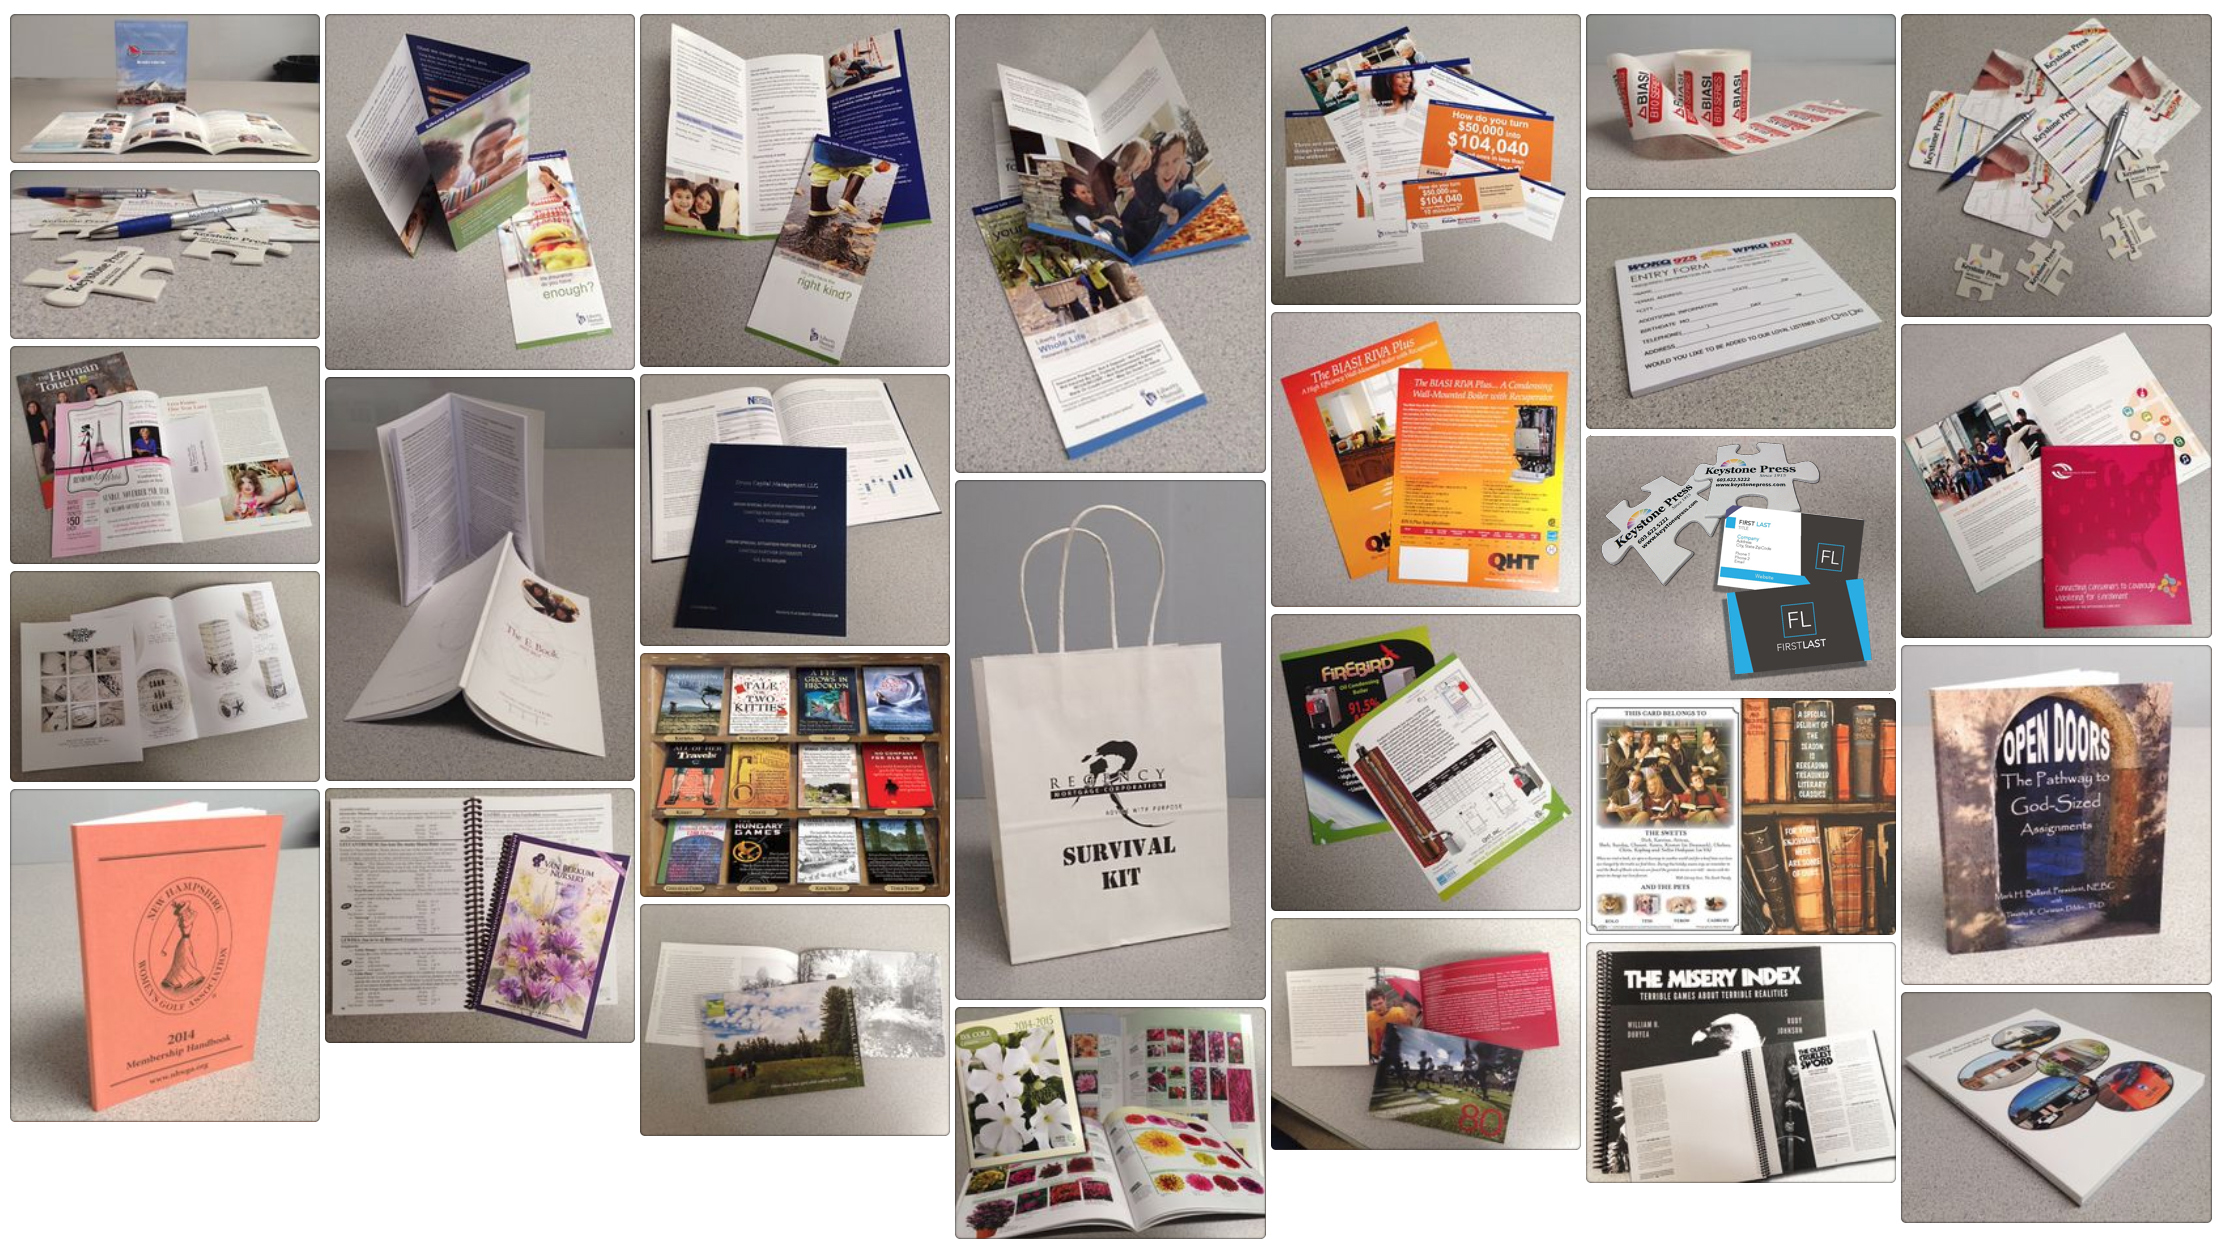 books, pads, business cards, gift bags, town reports, billing statements, brochures, sell sheets, flyers, postcards